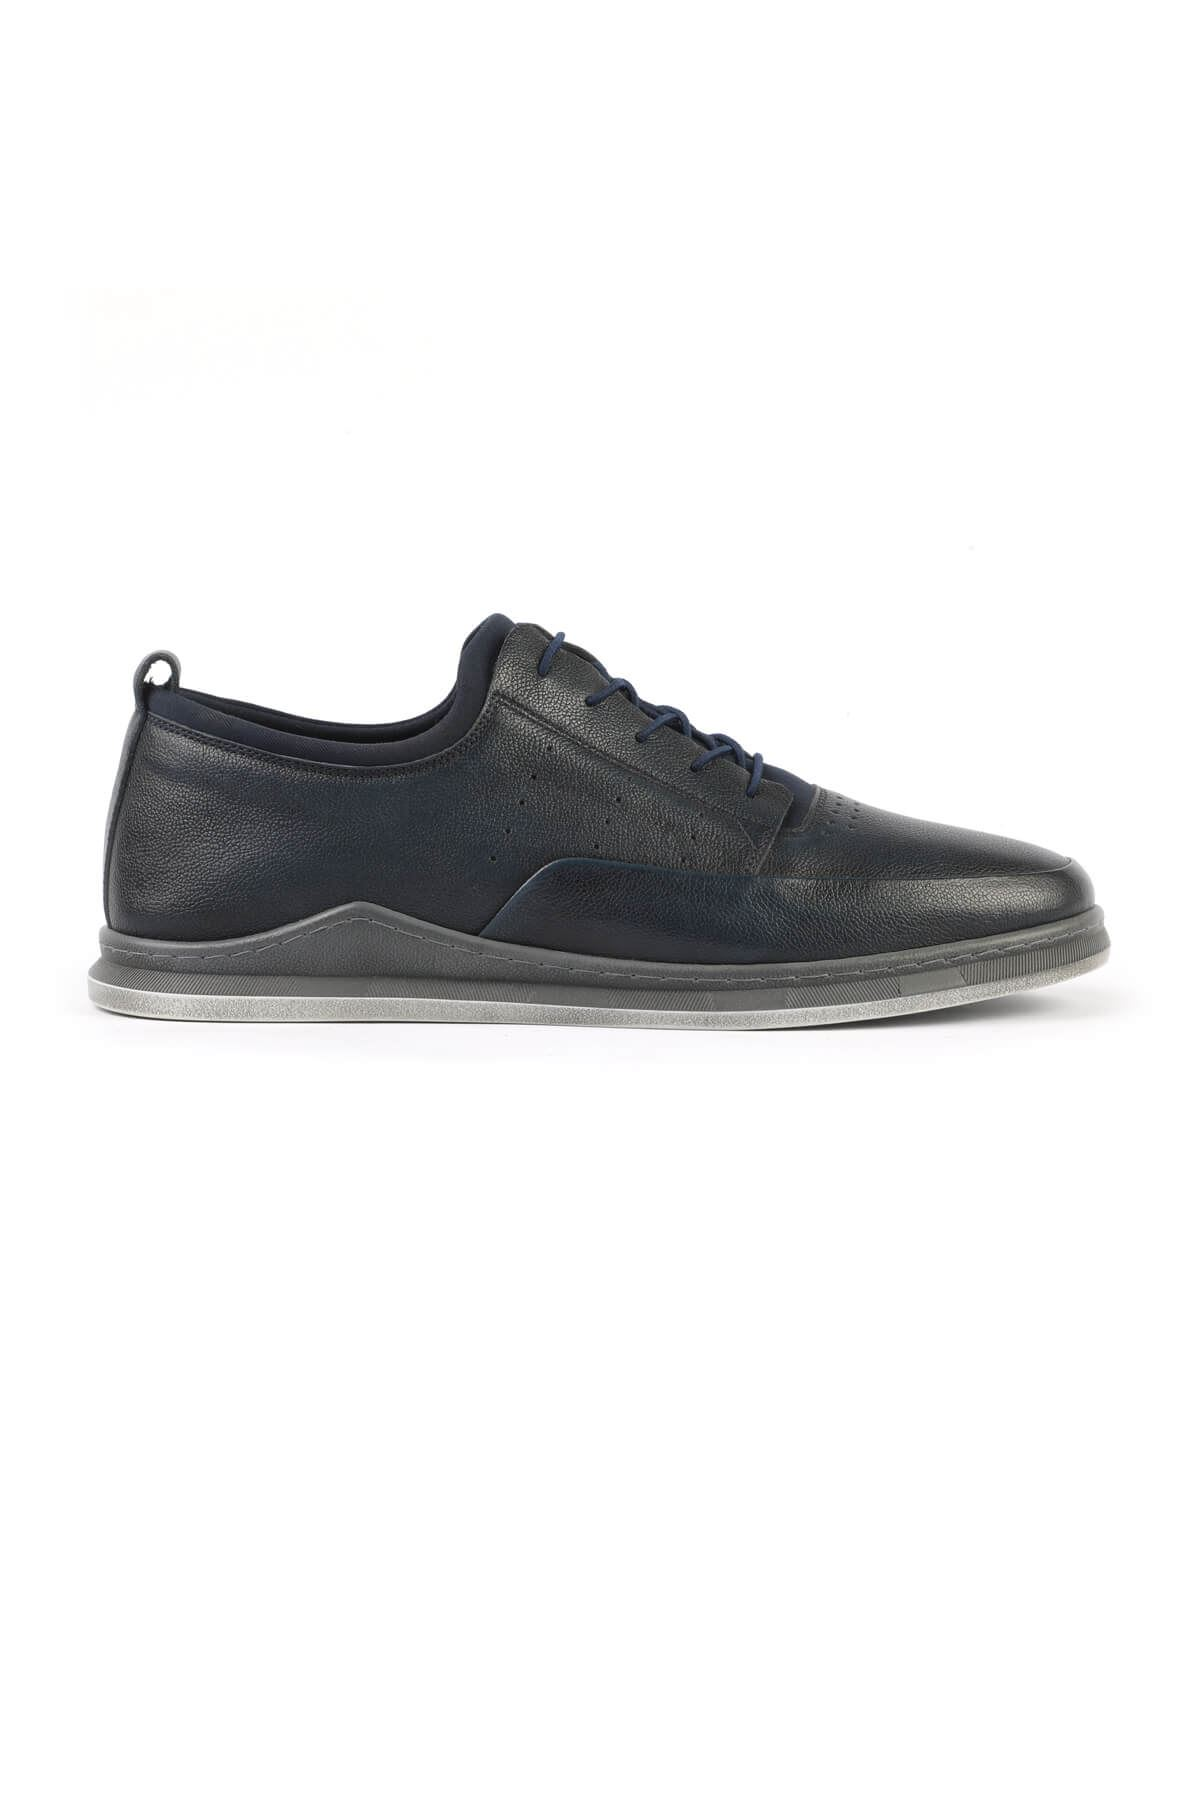 Libero 3043 Navy Blue Casual Shoes